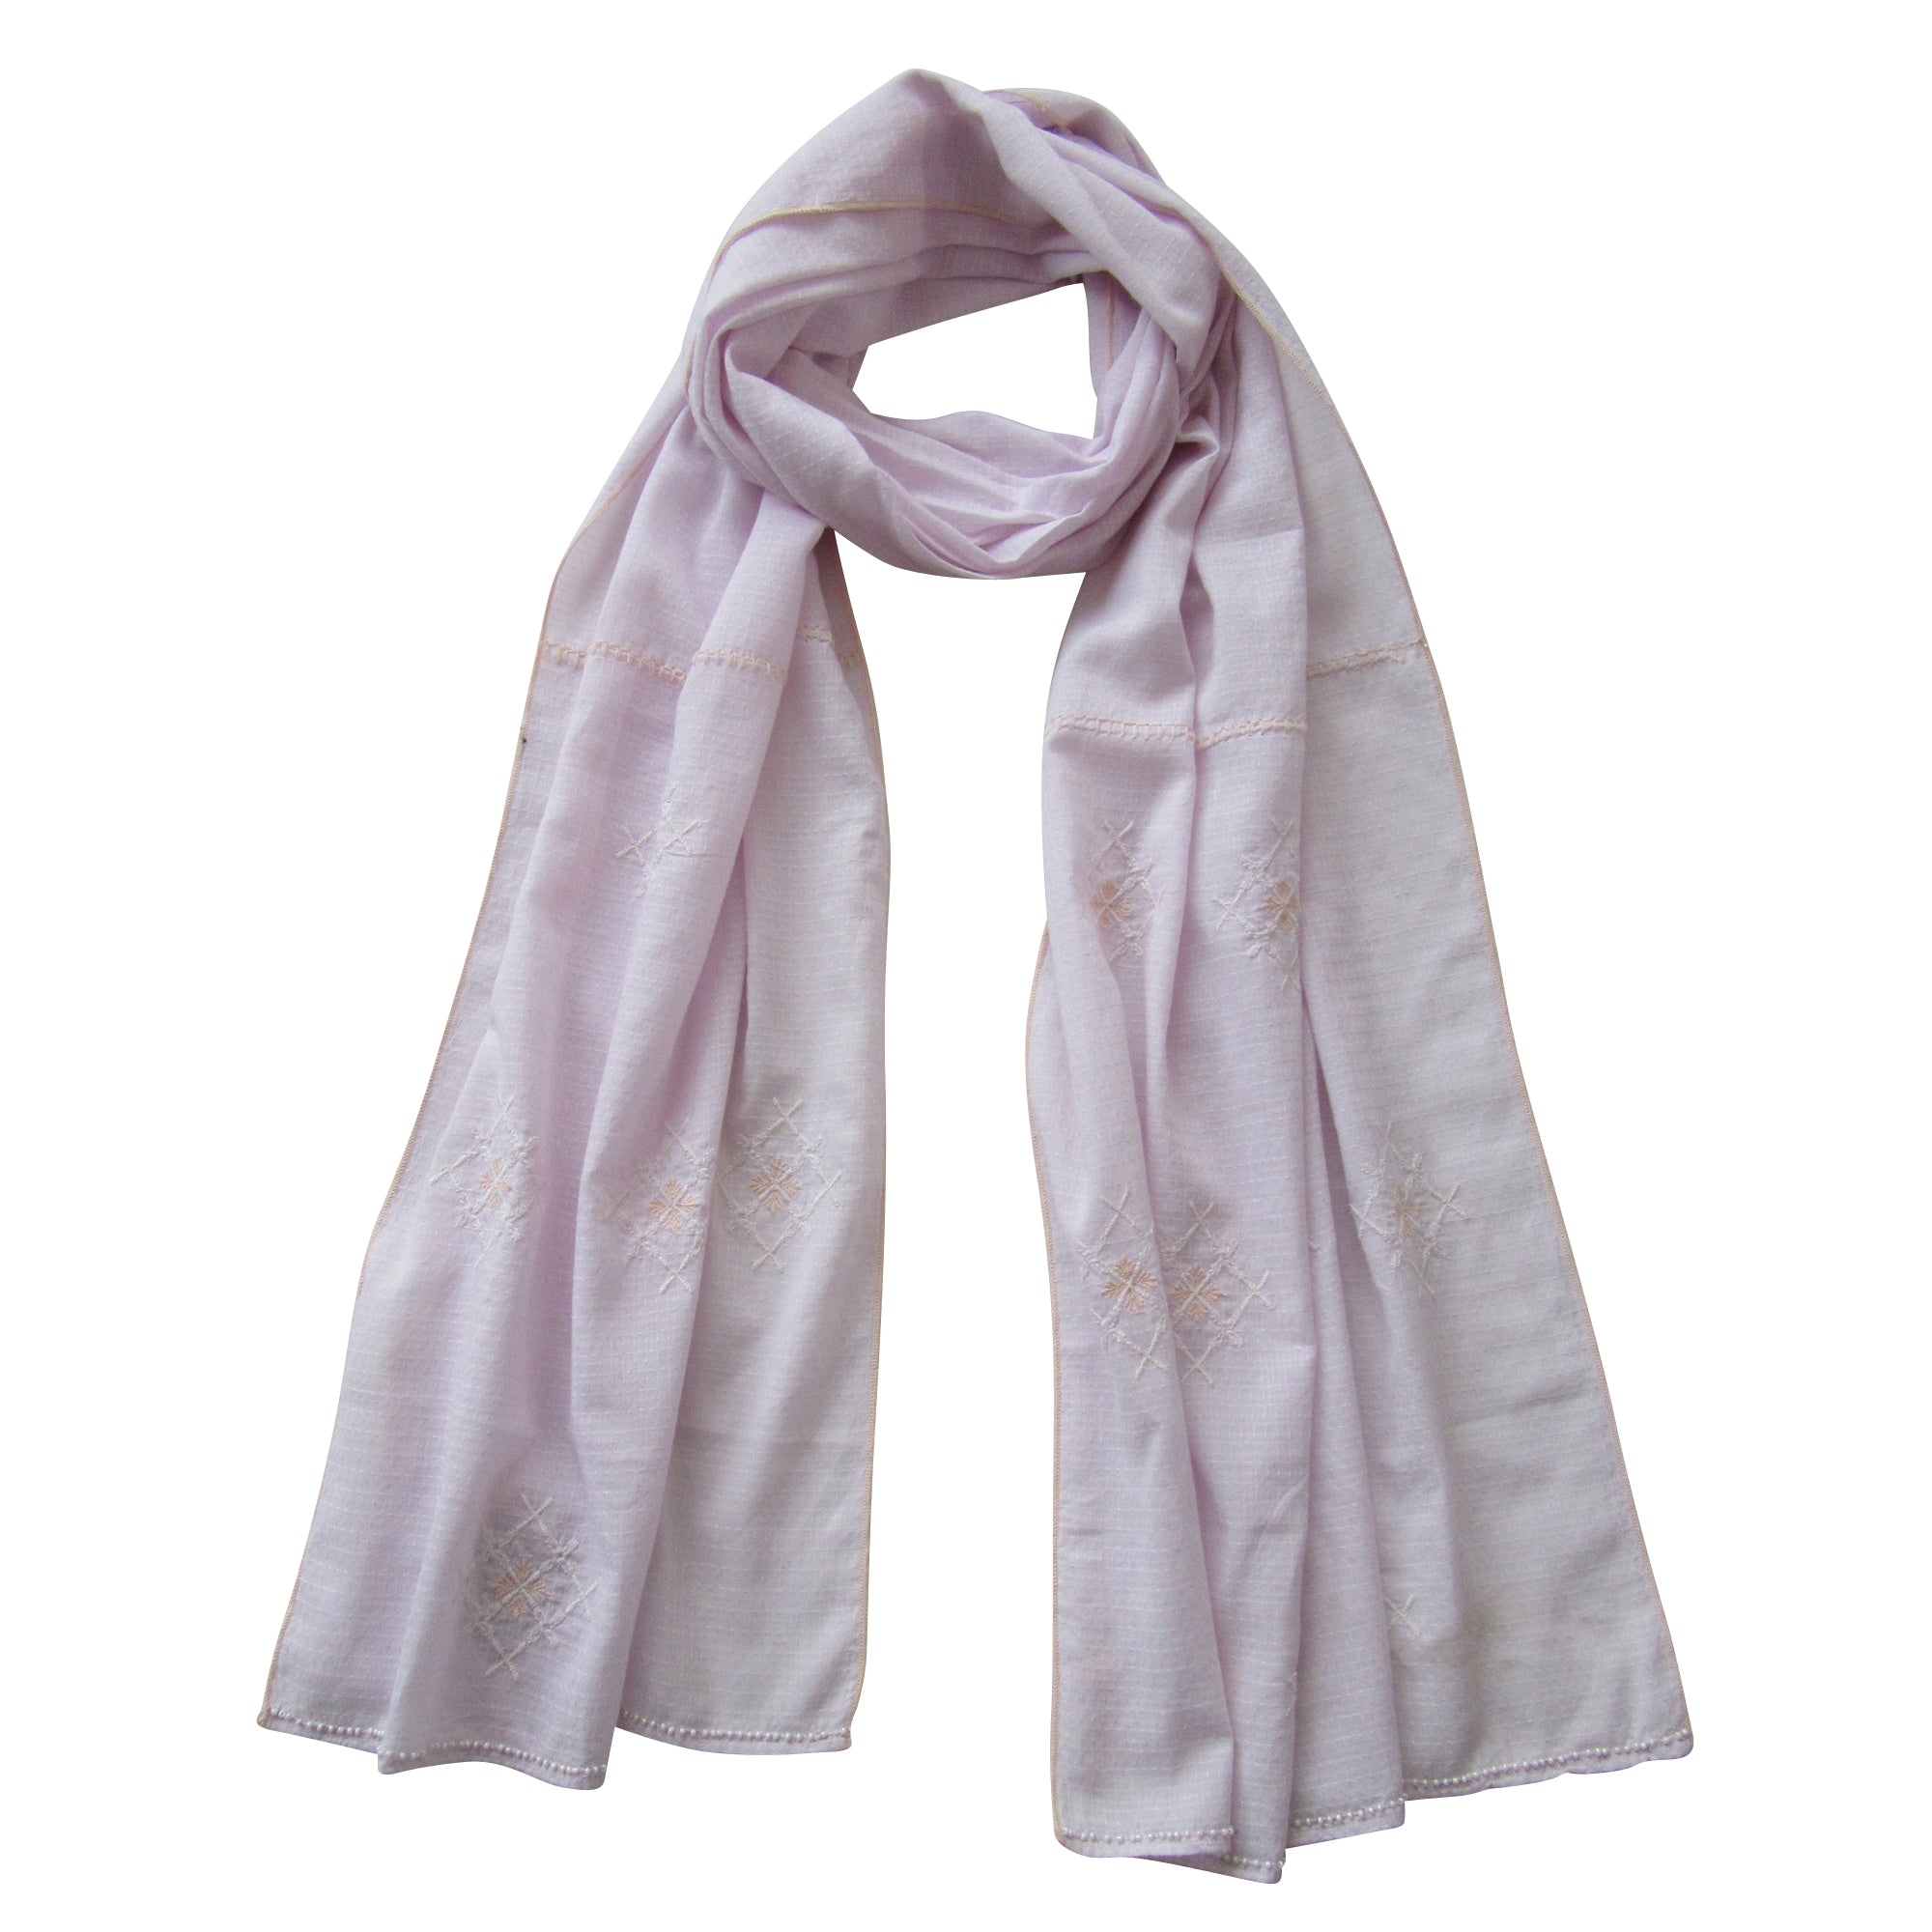 Embroidered Scarf : The soft MAUVE; LAVENDER